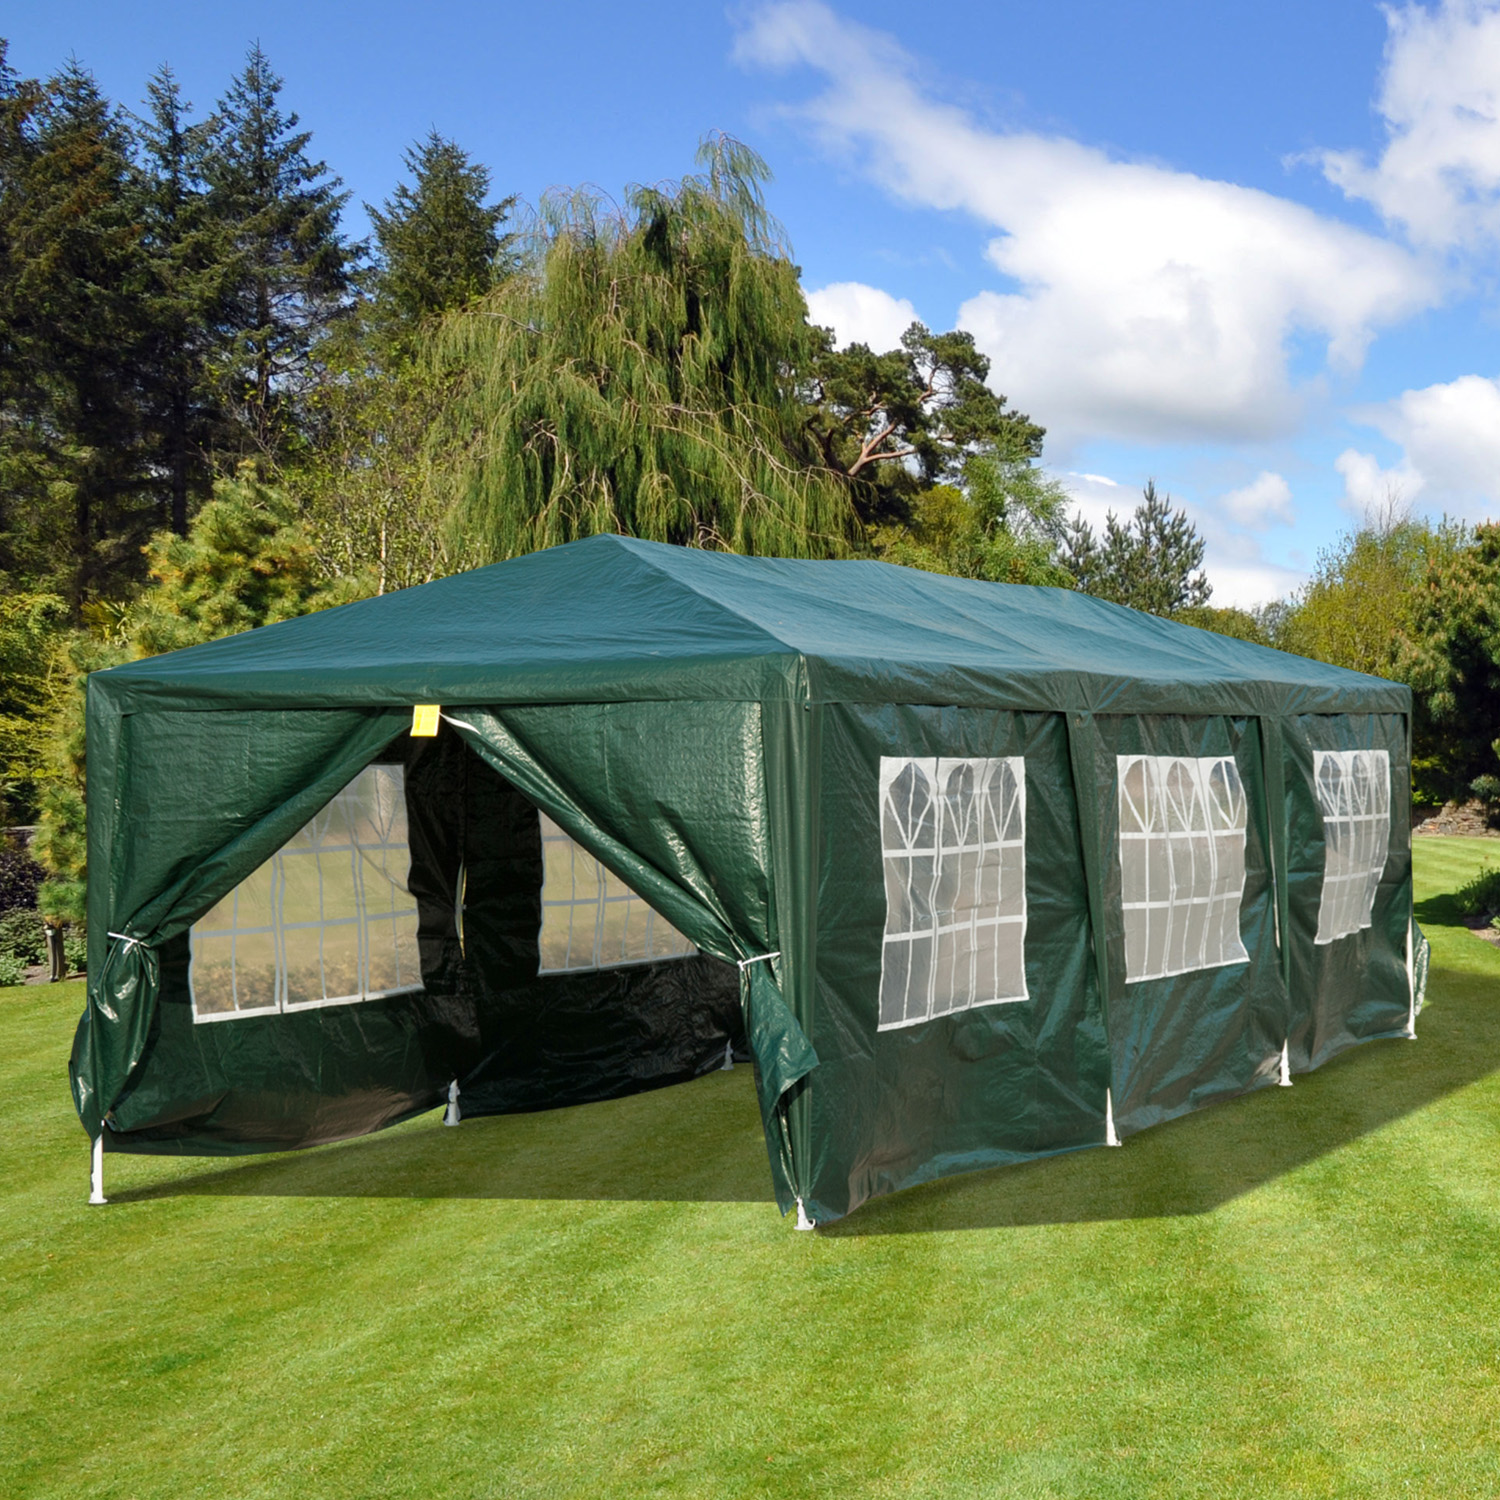 Image of CAD $179.99 Outsunny 10x30ft Gazebo Canopy Party Tent Portable Outdoor Event Garden Pavilion with 8 Removable Wall Green / Wedding Sunshade w/ Side Canada 95509791245